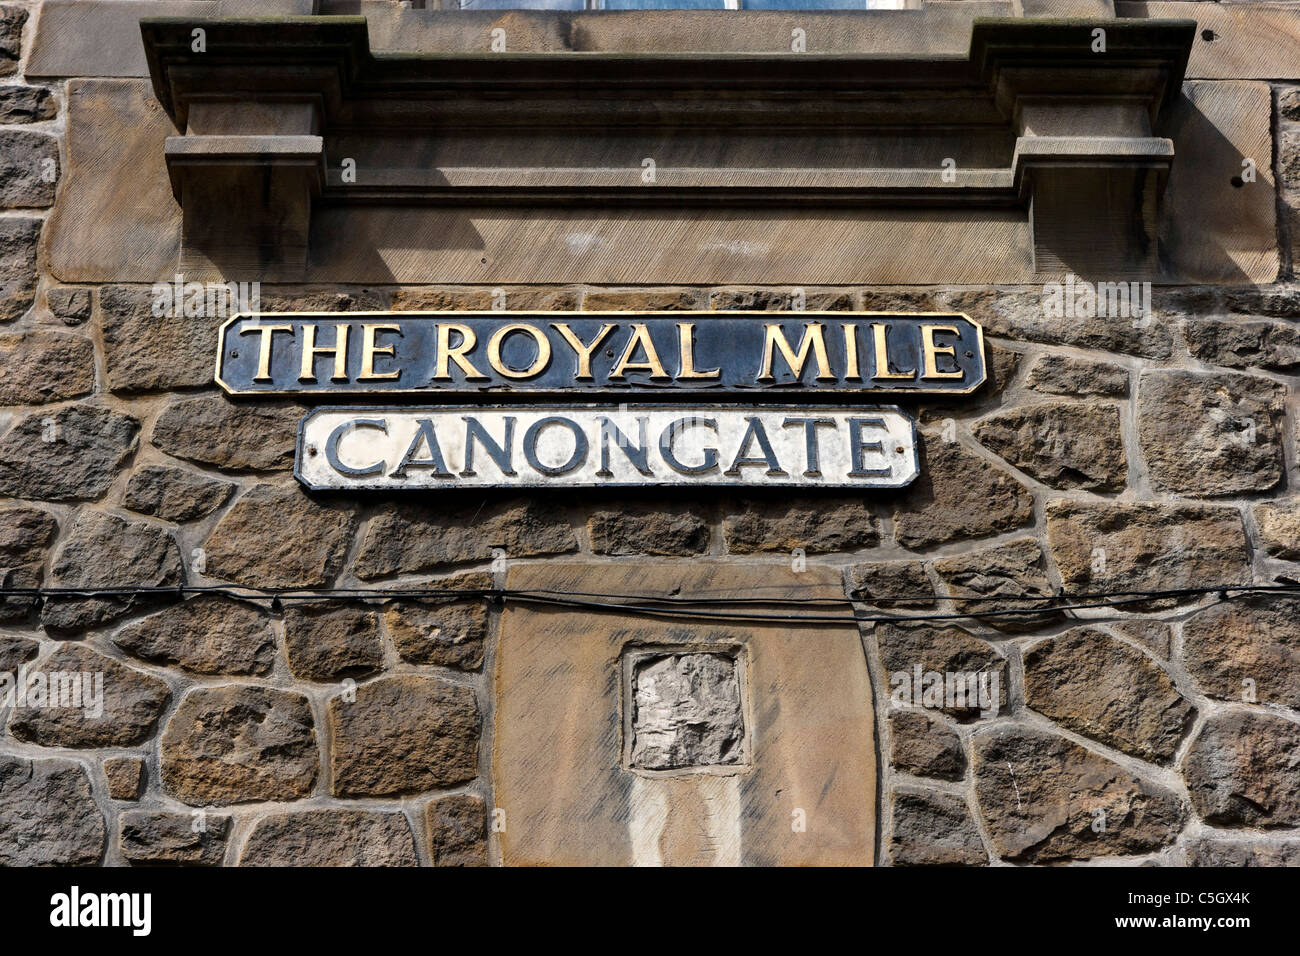 Street sign for Canongate on The Royal Mile, Old Town, Edinburgh, Scotland, UK - Stock Image